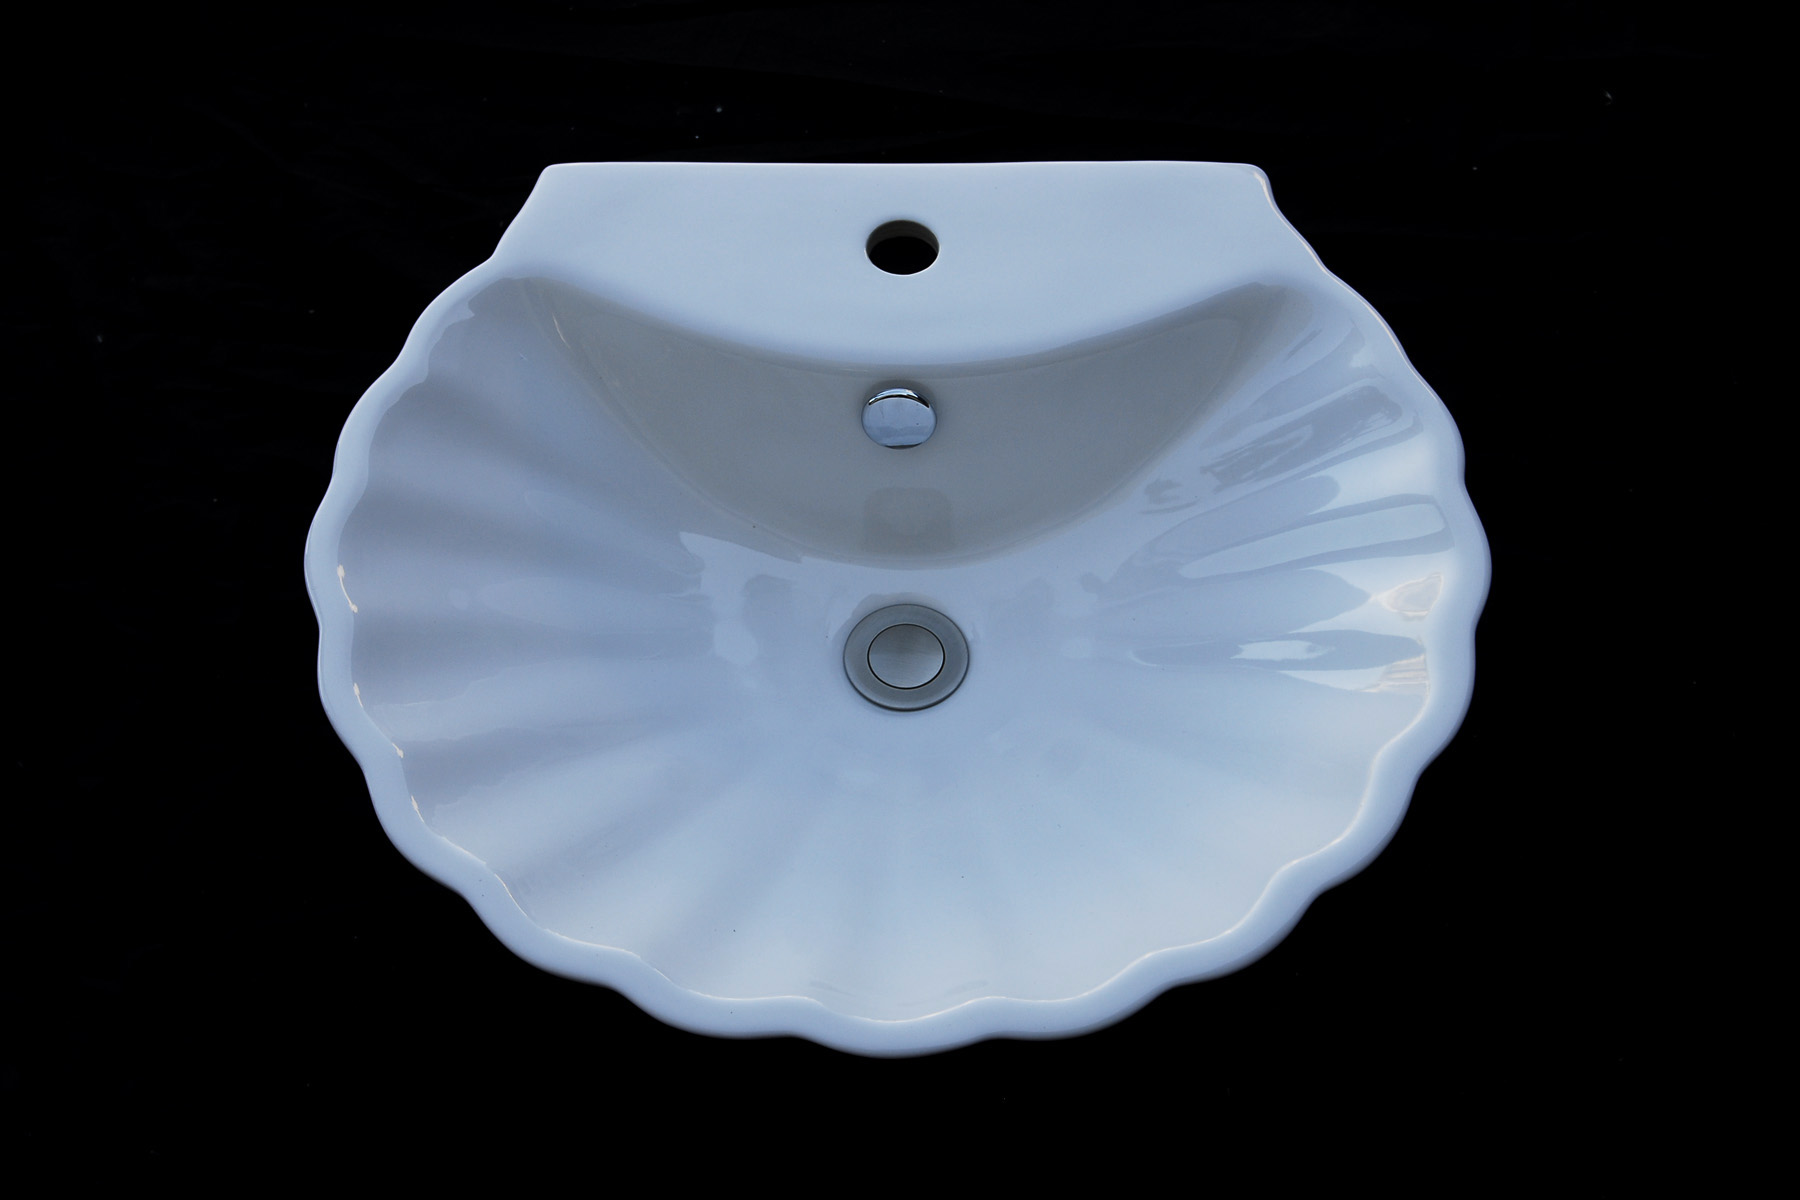 Vessel Porcelain Bathroom Sink